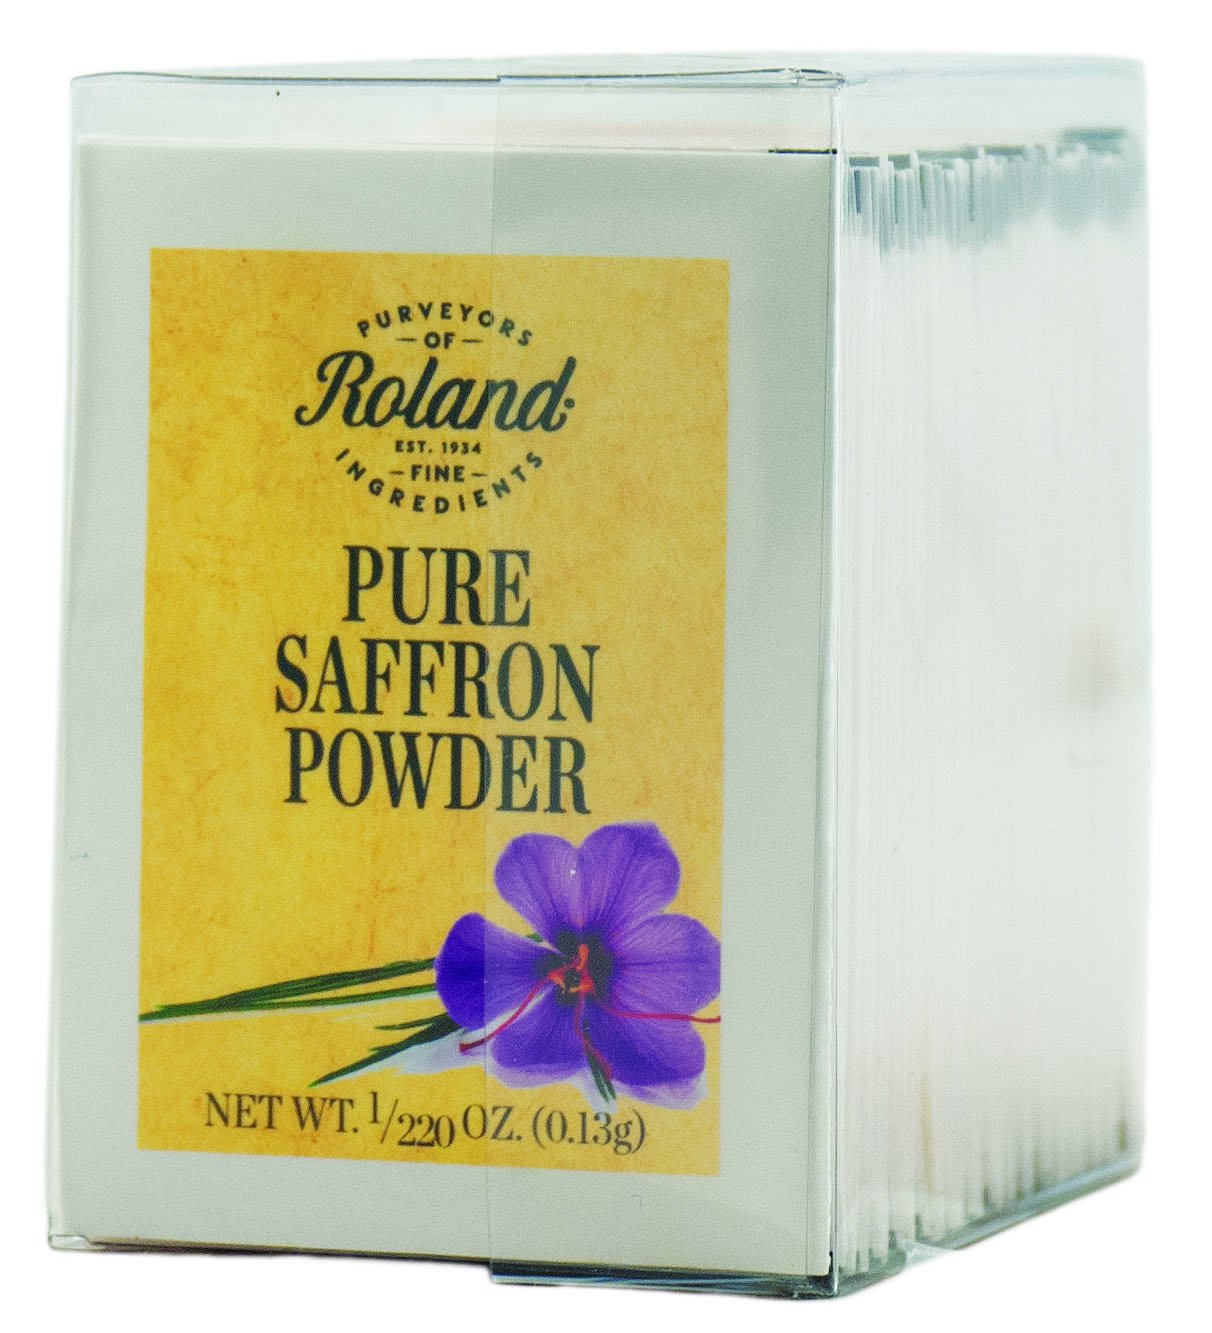 Roland Pure Saffron Powder, 50 Envelopes Net Wt. 1/220 Oz (0.13g)